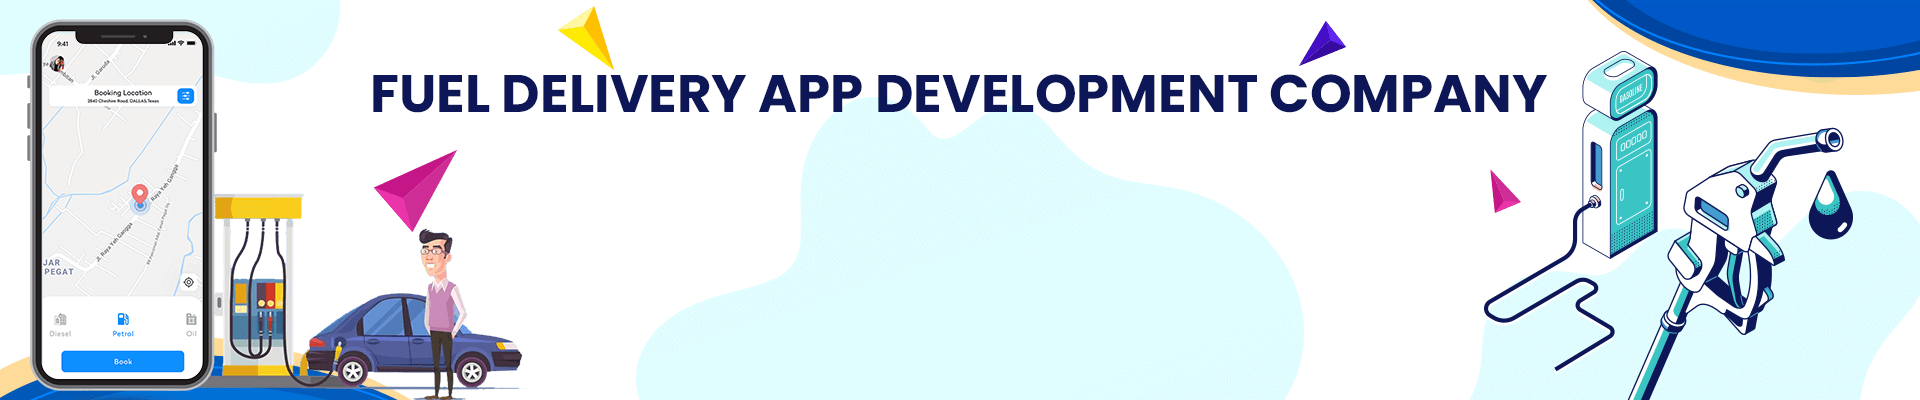 Fuel Delivery App Development Company   Fuel Delivery App Developers For Hire